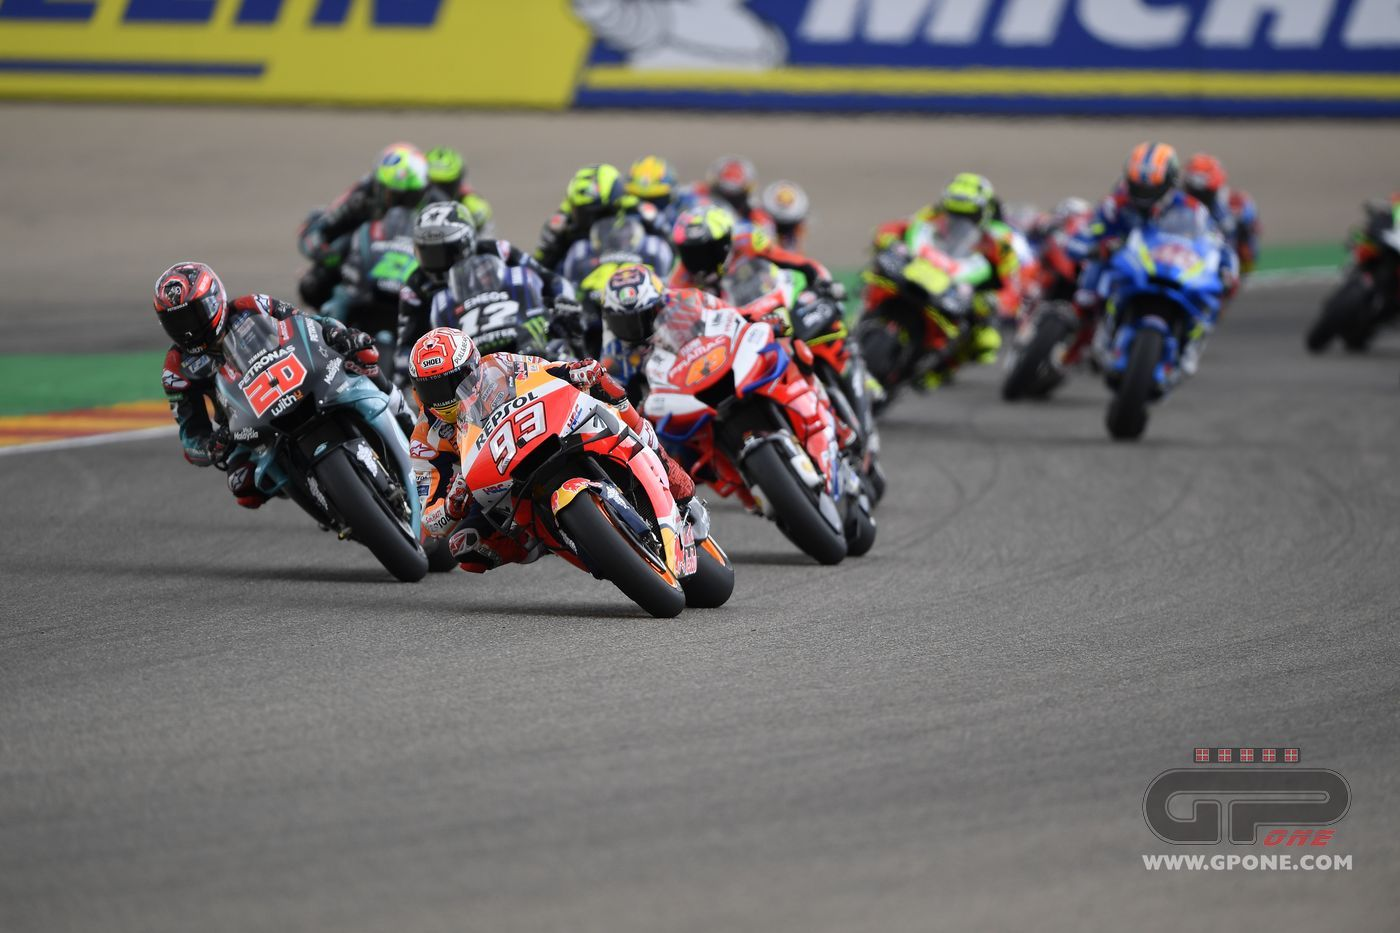 MotoGP, Aragon, the Good, the Bad, and the Ugly